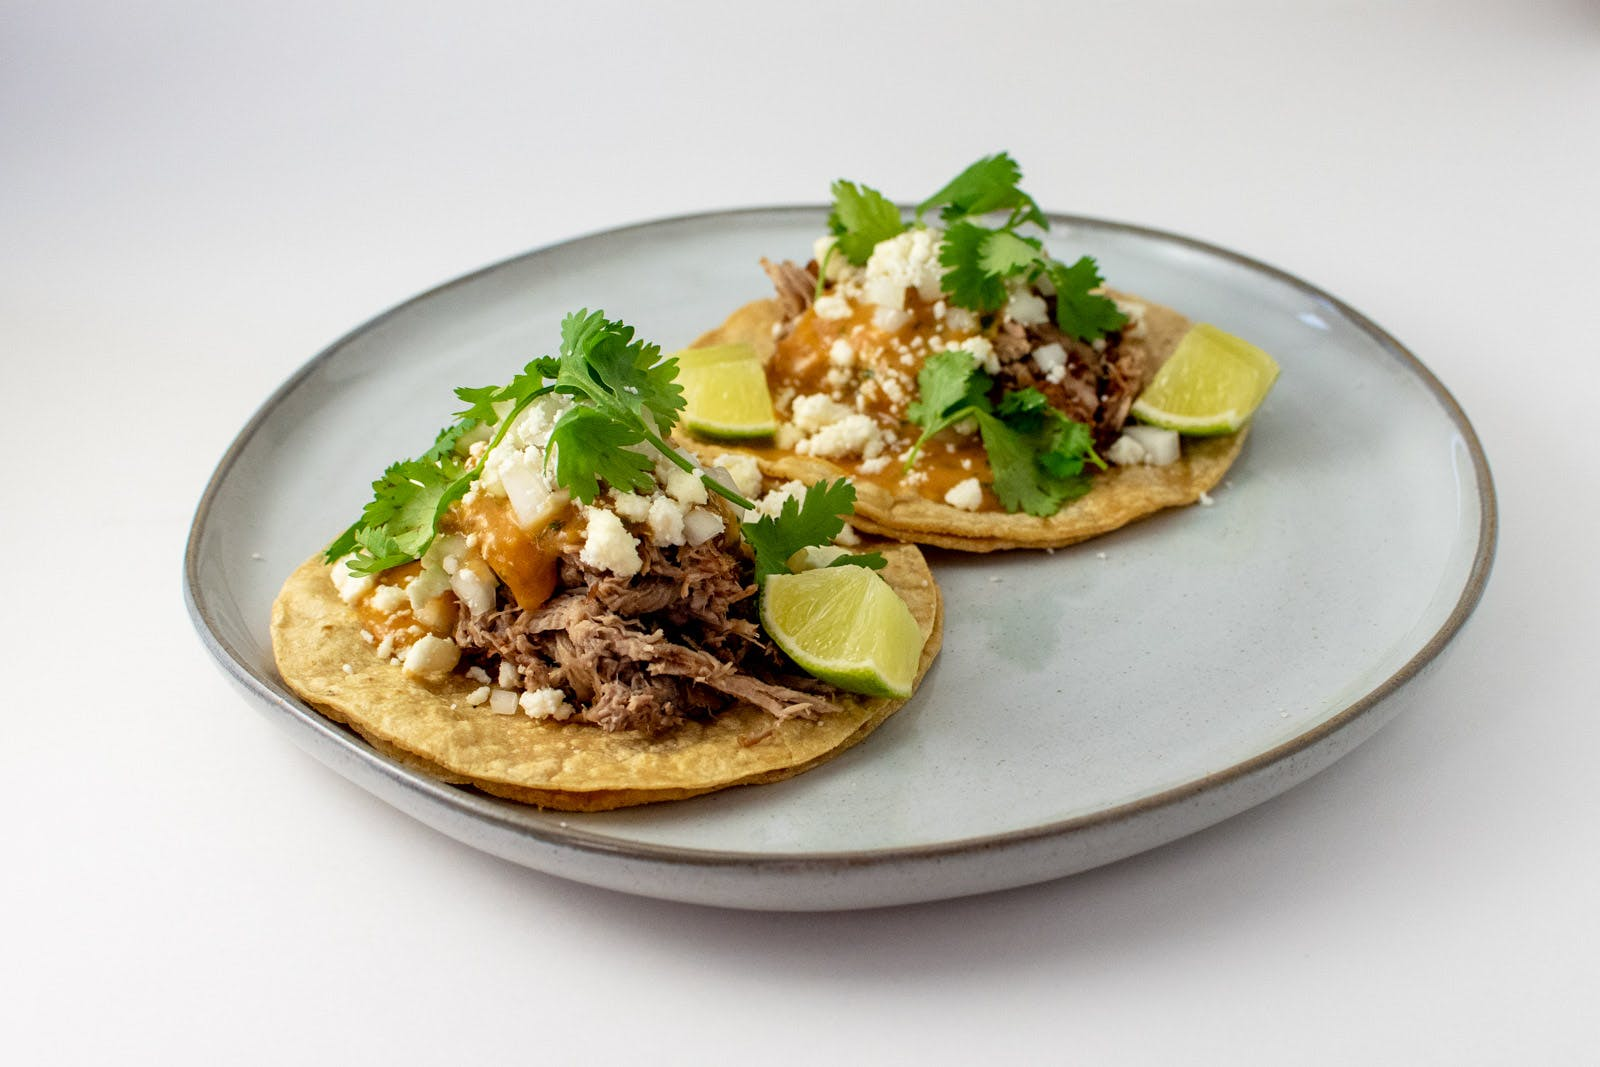 Cola Braised Pork Carnitas Tacos from Taco Royale - Eastside Madison in Madison, WI